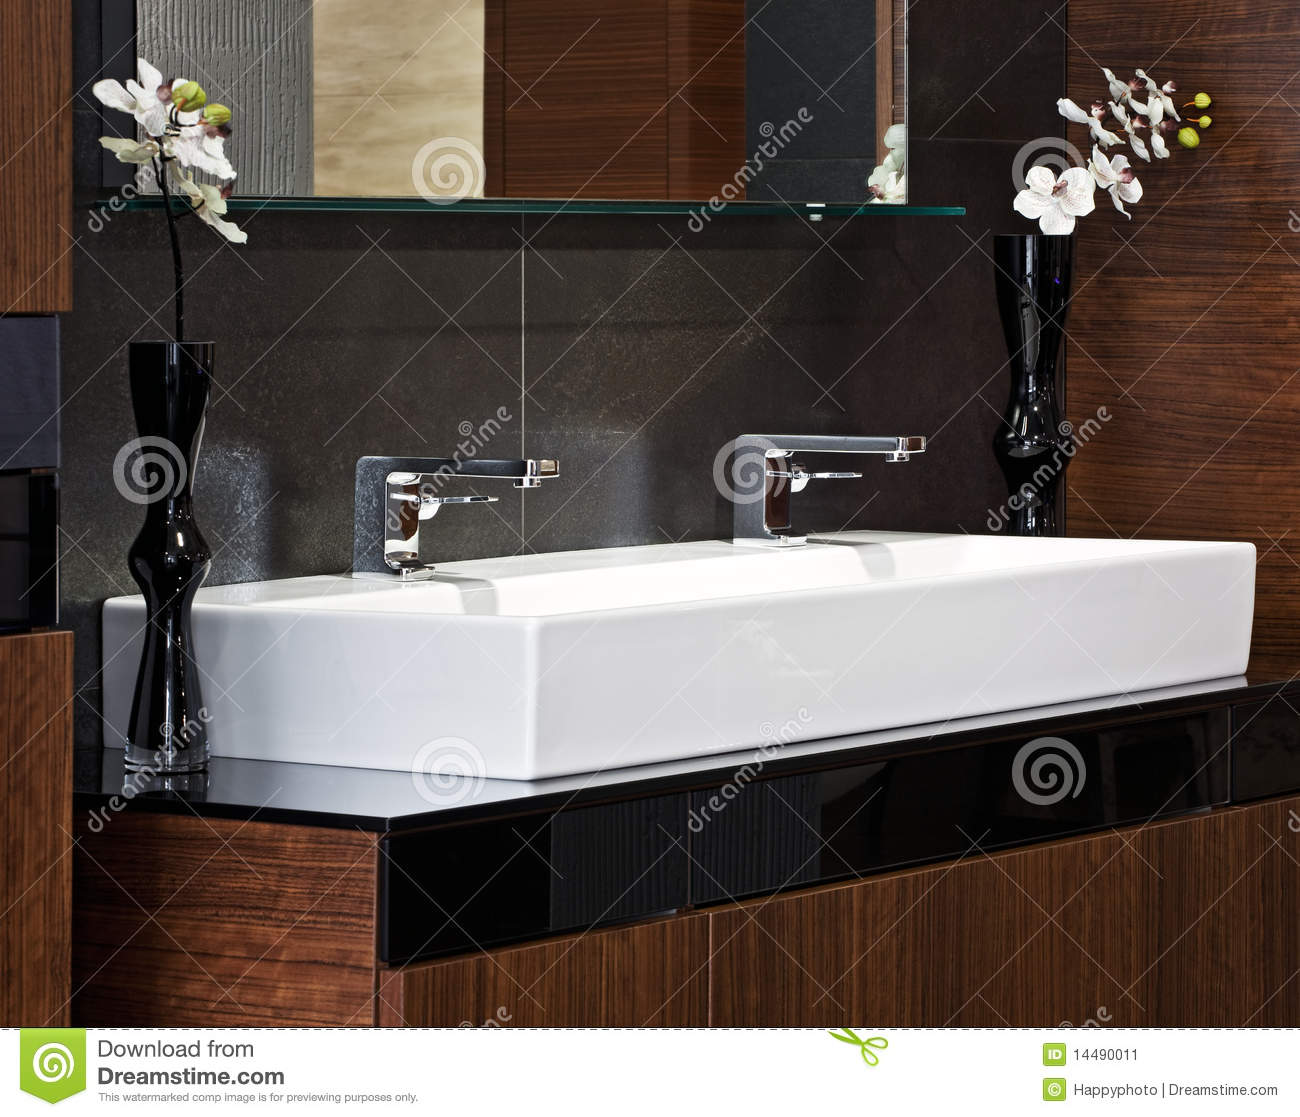 Composition in modern bathroom interior